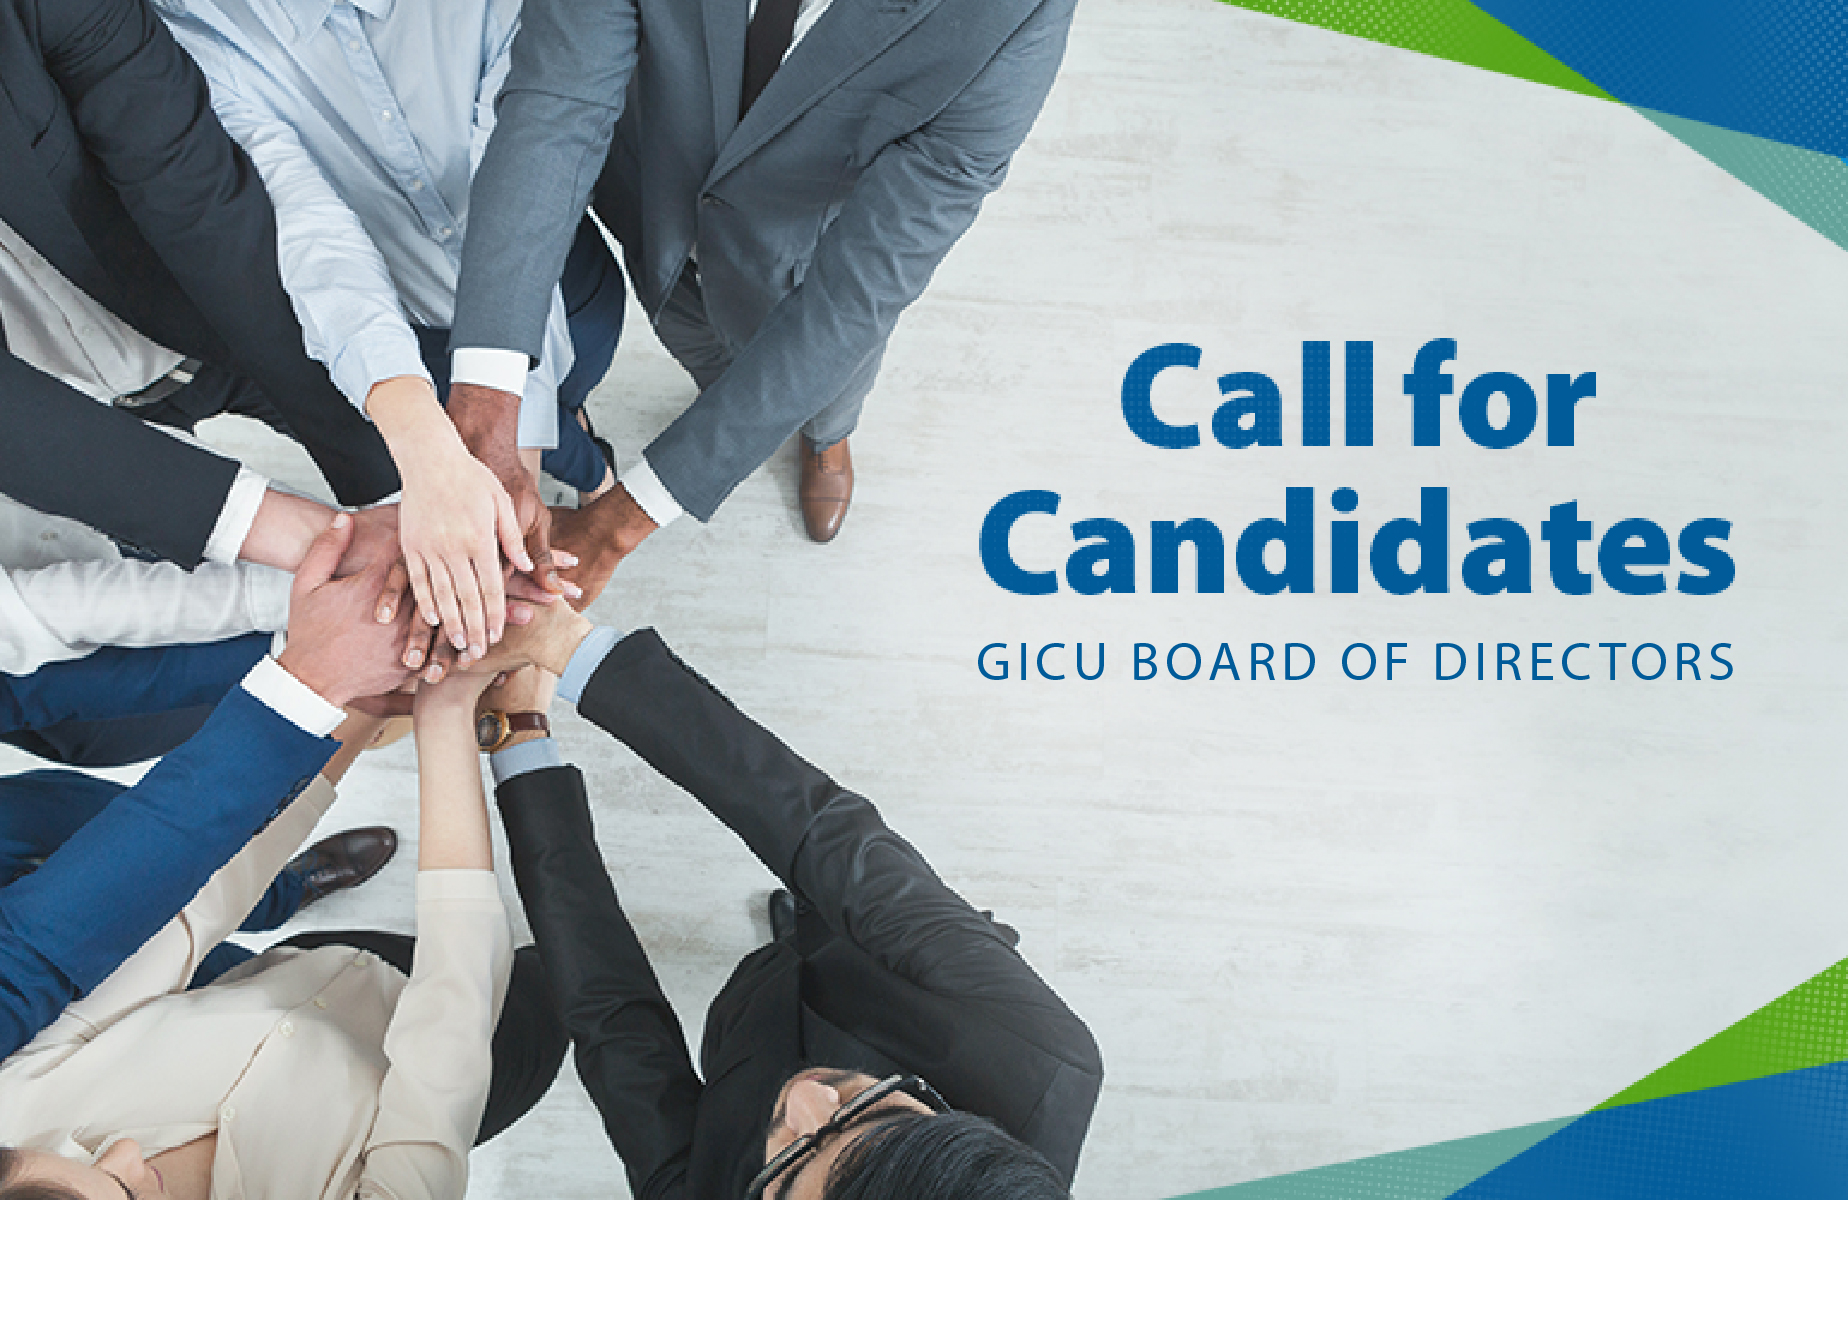 Board of Director - Call for Candidates